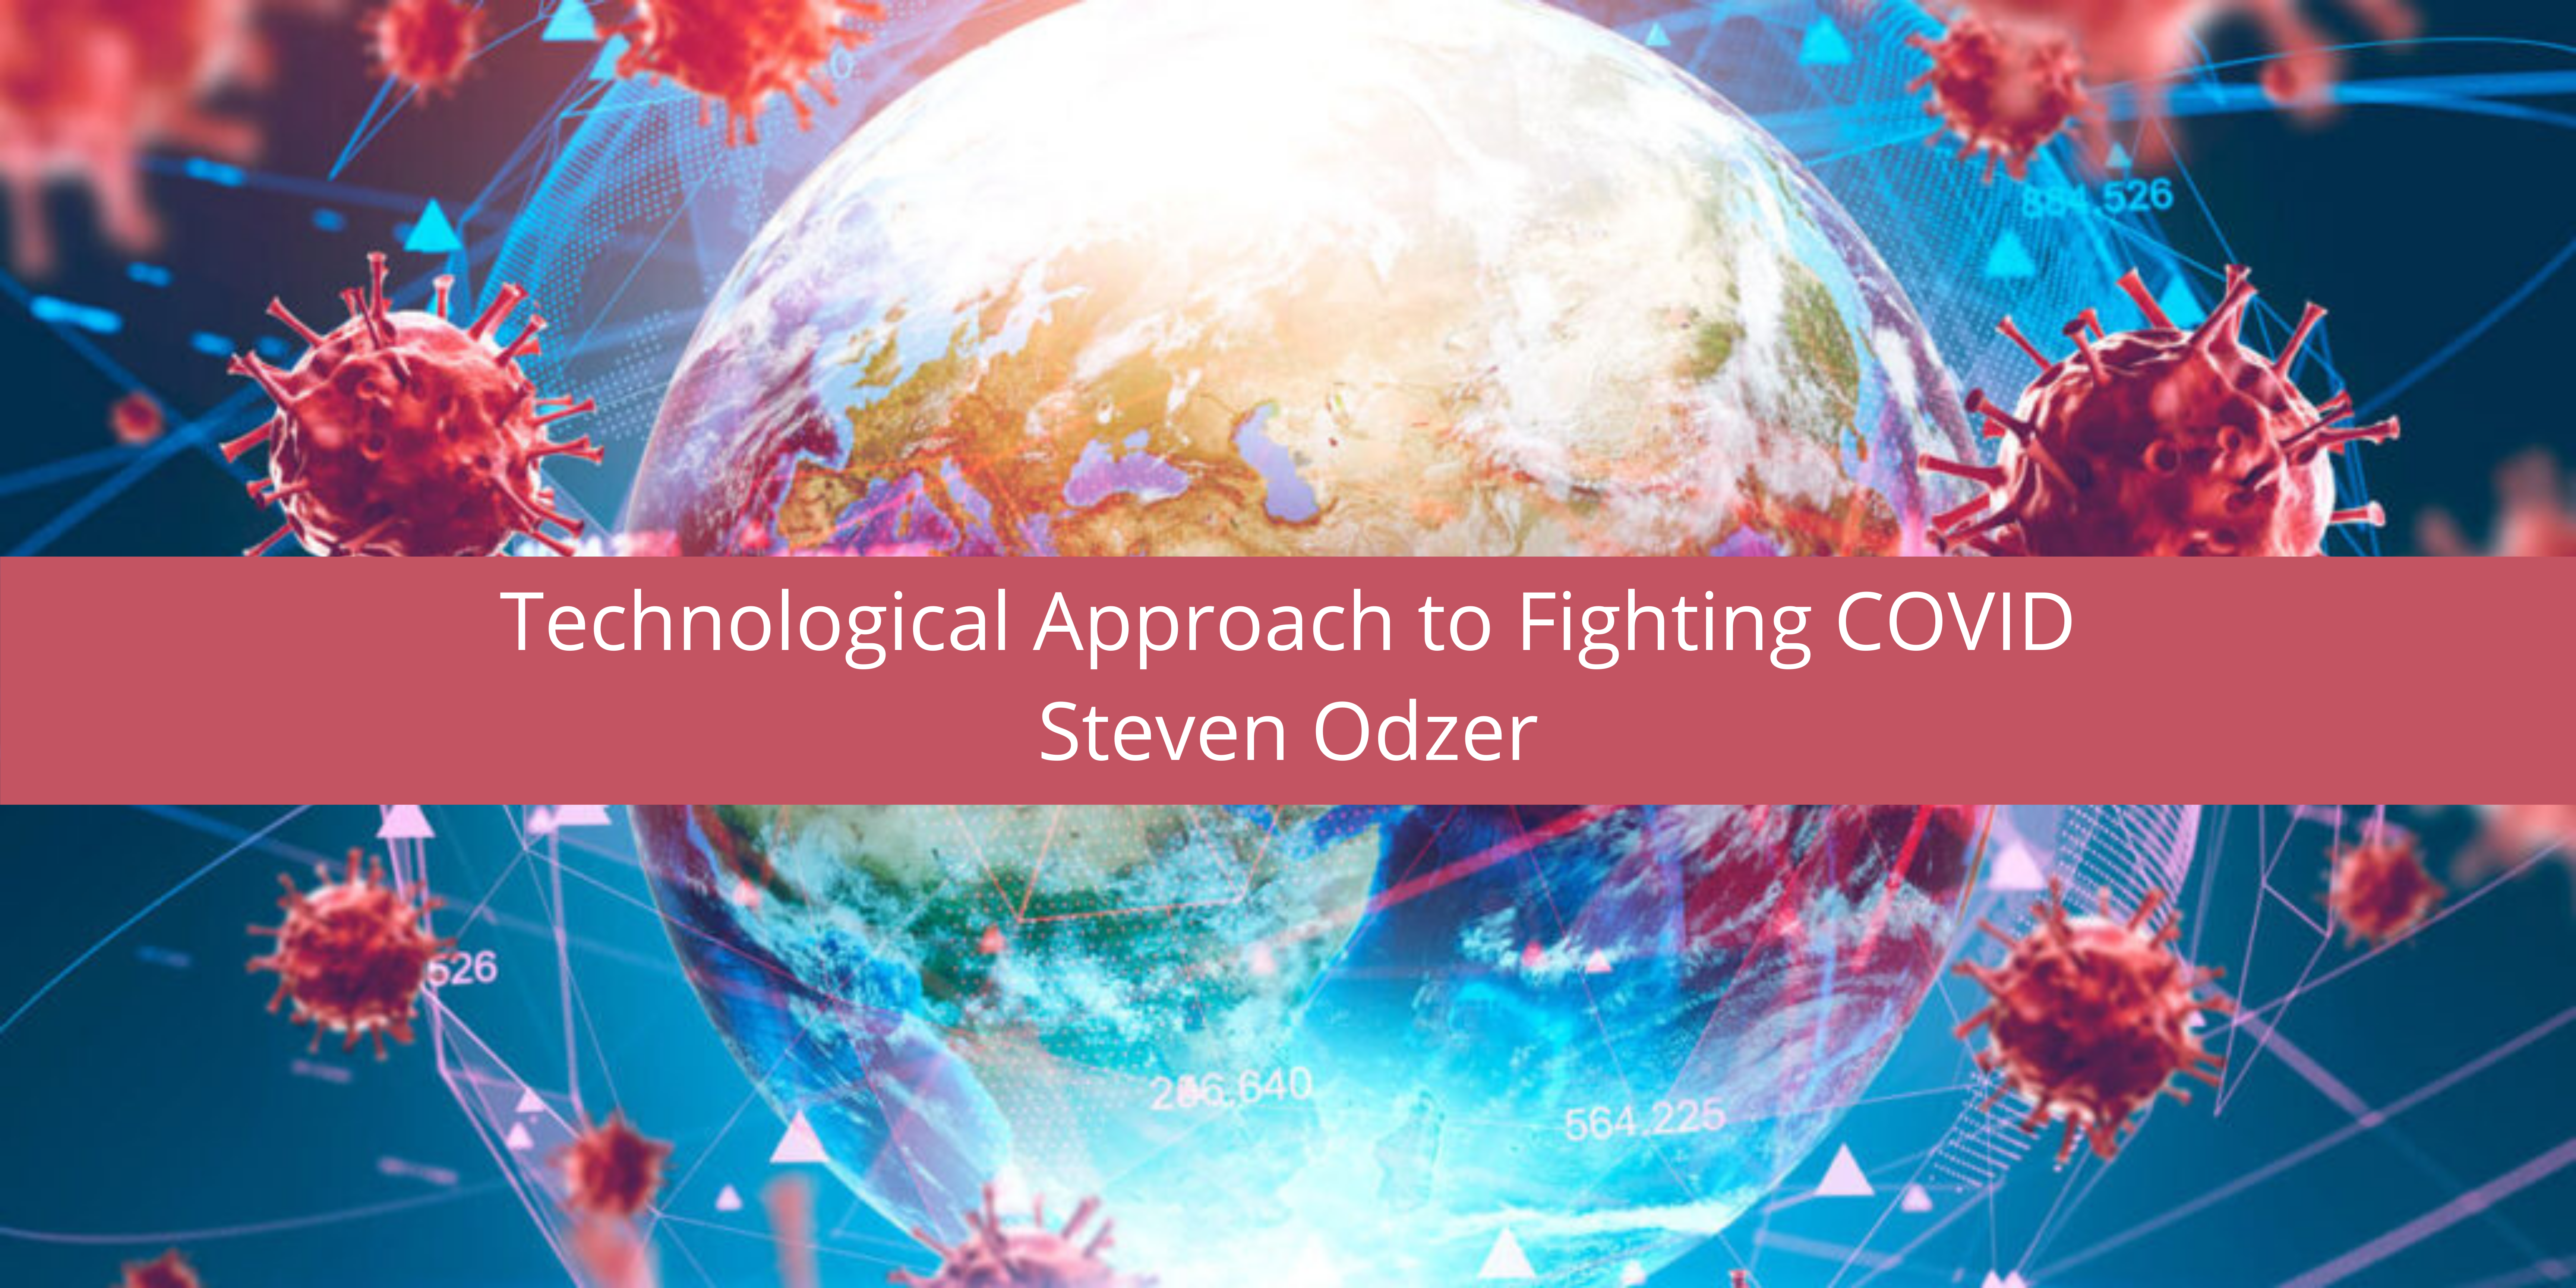 Steven Odzer on the Technological Approach to Fighting COVID